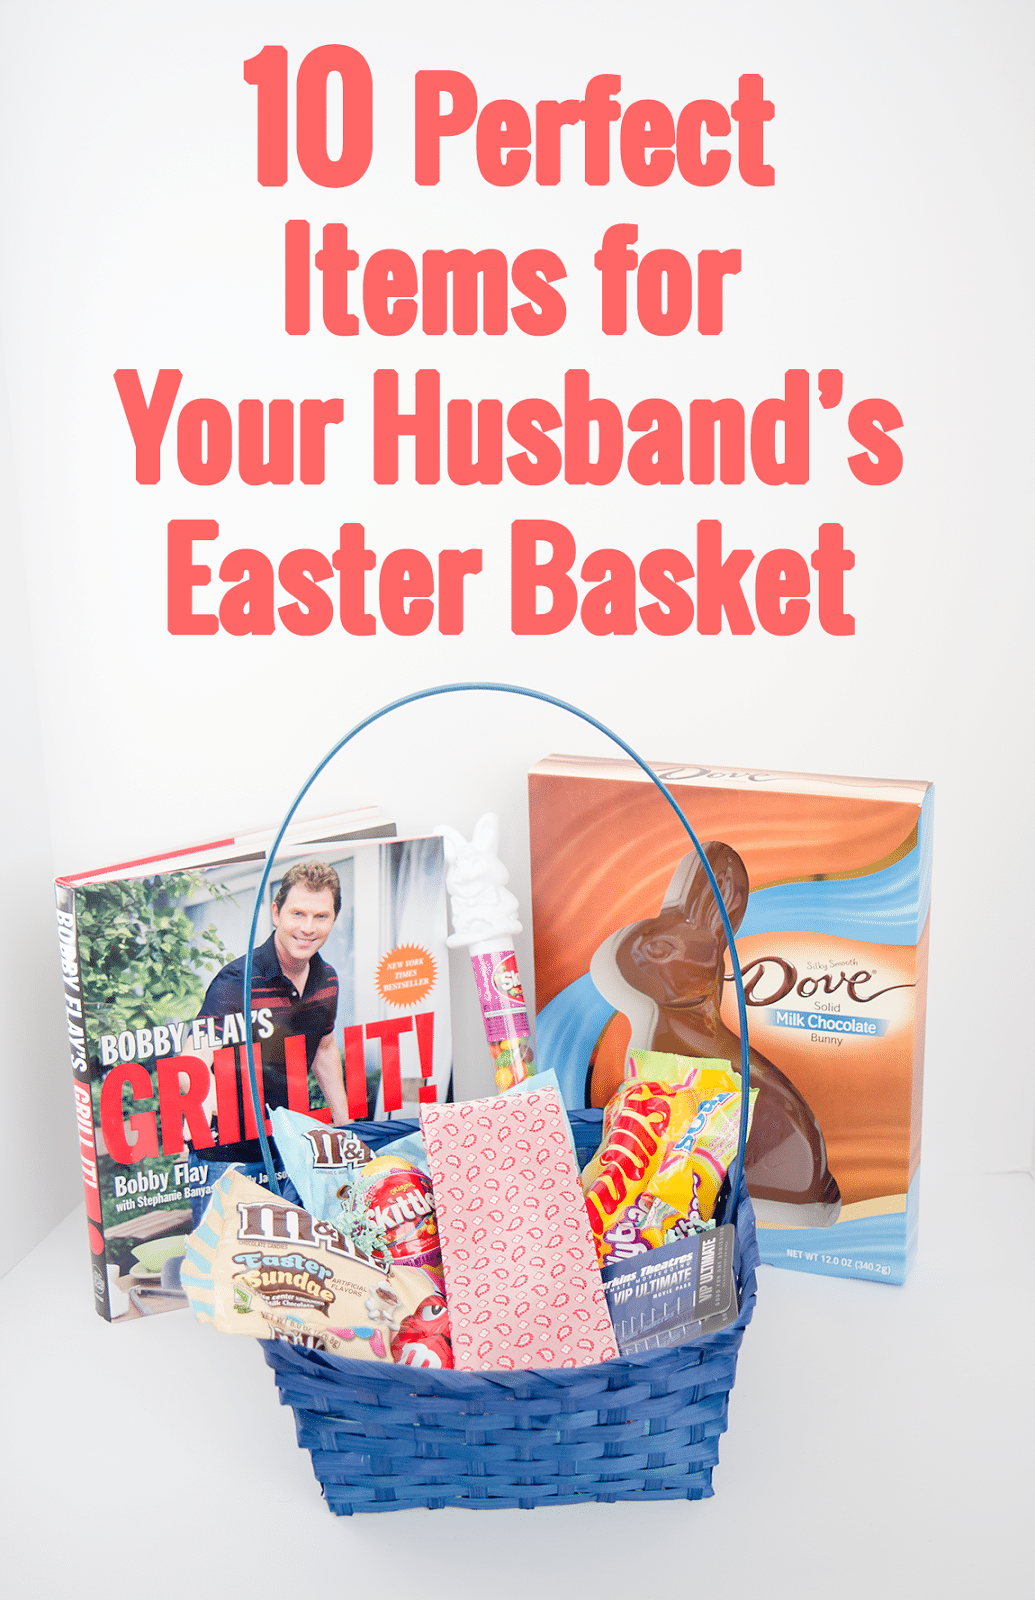 Husbands easter basket sometimes you just need some help with huband easter basket ideas here are 10 perfect items for your husbands easter basket negle Choice Image